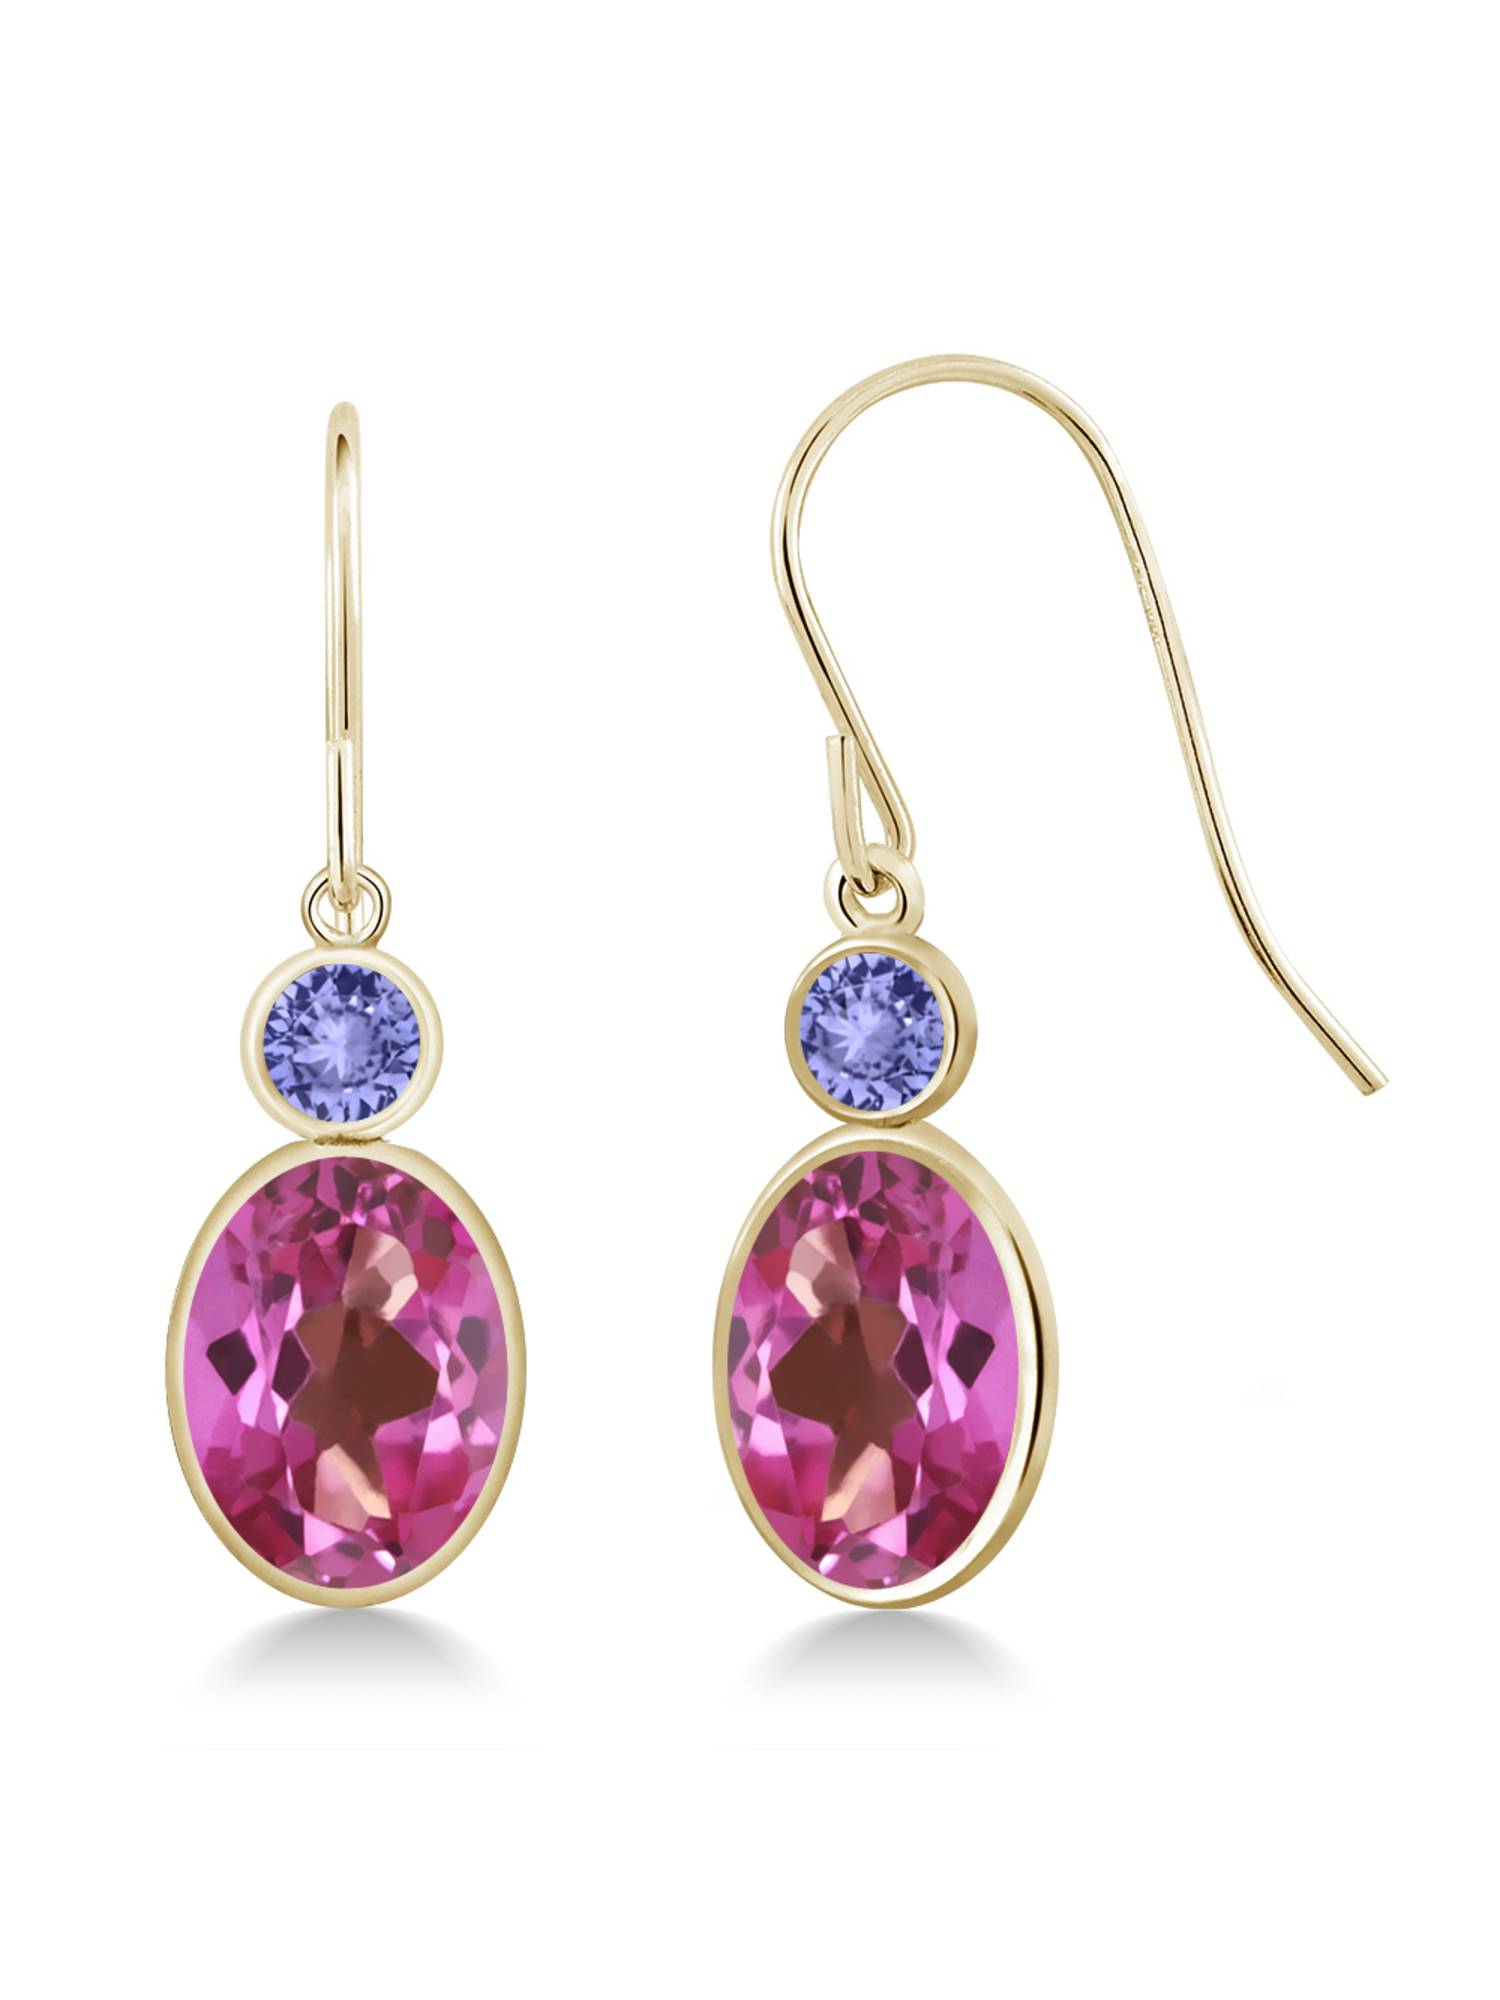 3.24 Ct Oval Pink Mystic Topaz Blue Tanzanite 14K Yellow Gold Earrings by